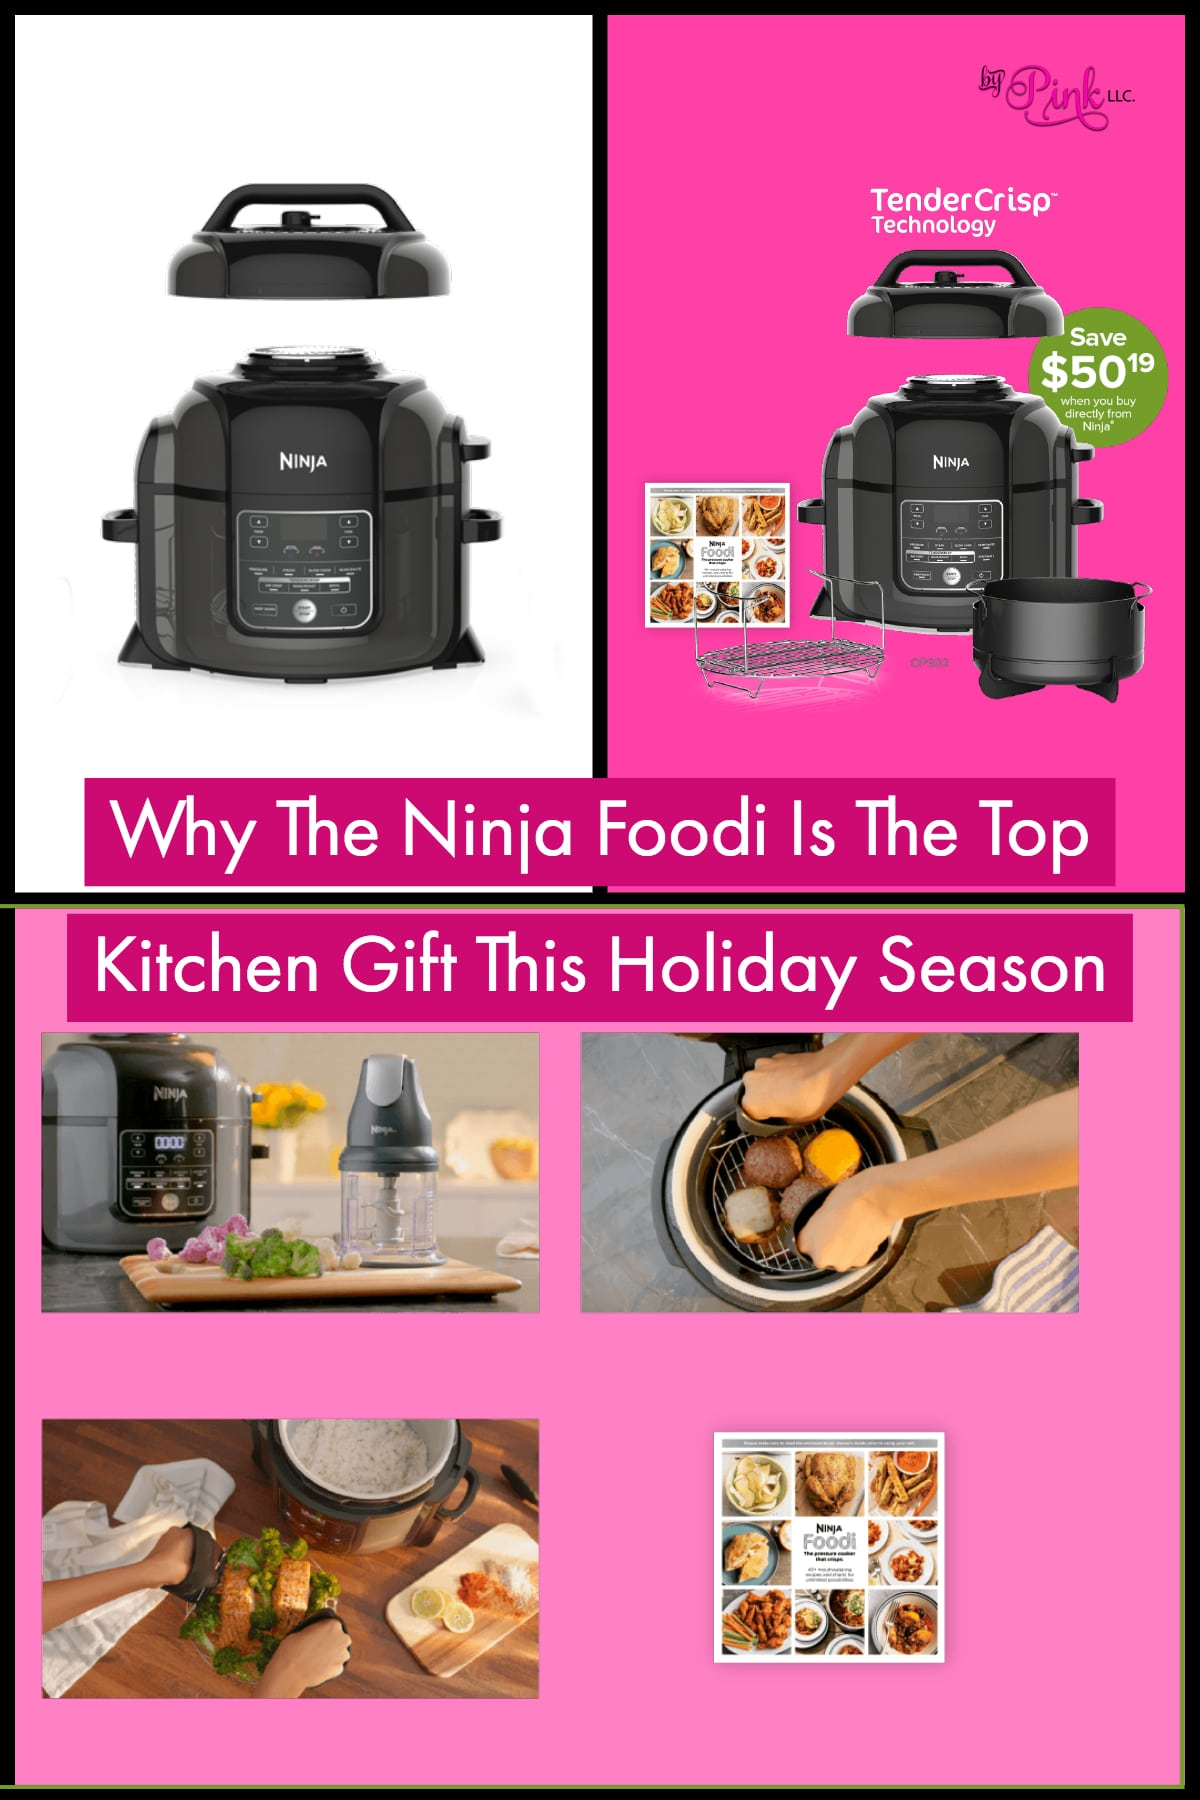 Last year the world was hit by a world wind from the Instant Pot, and this year the Ninja Foodi is ramping up speed! The Ninja Foodi is going to be the top foodi gift this holiday season on so many peoples wishlist!